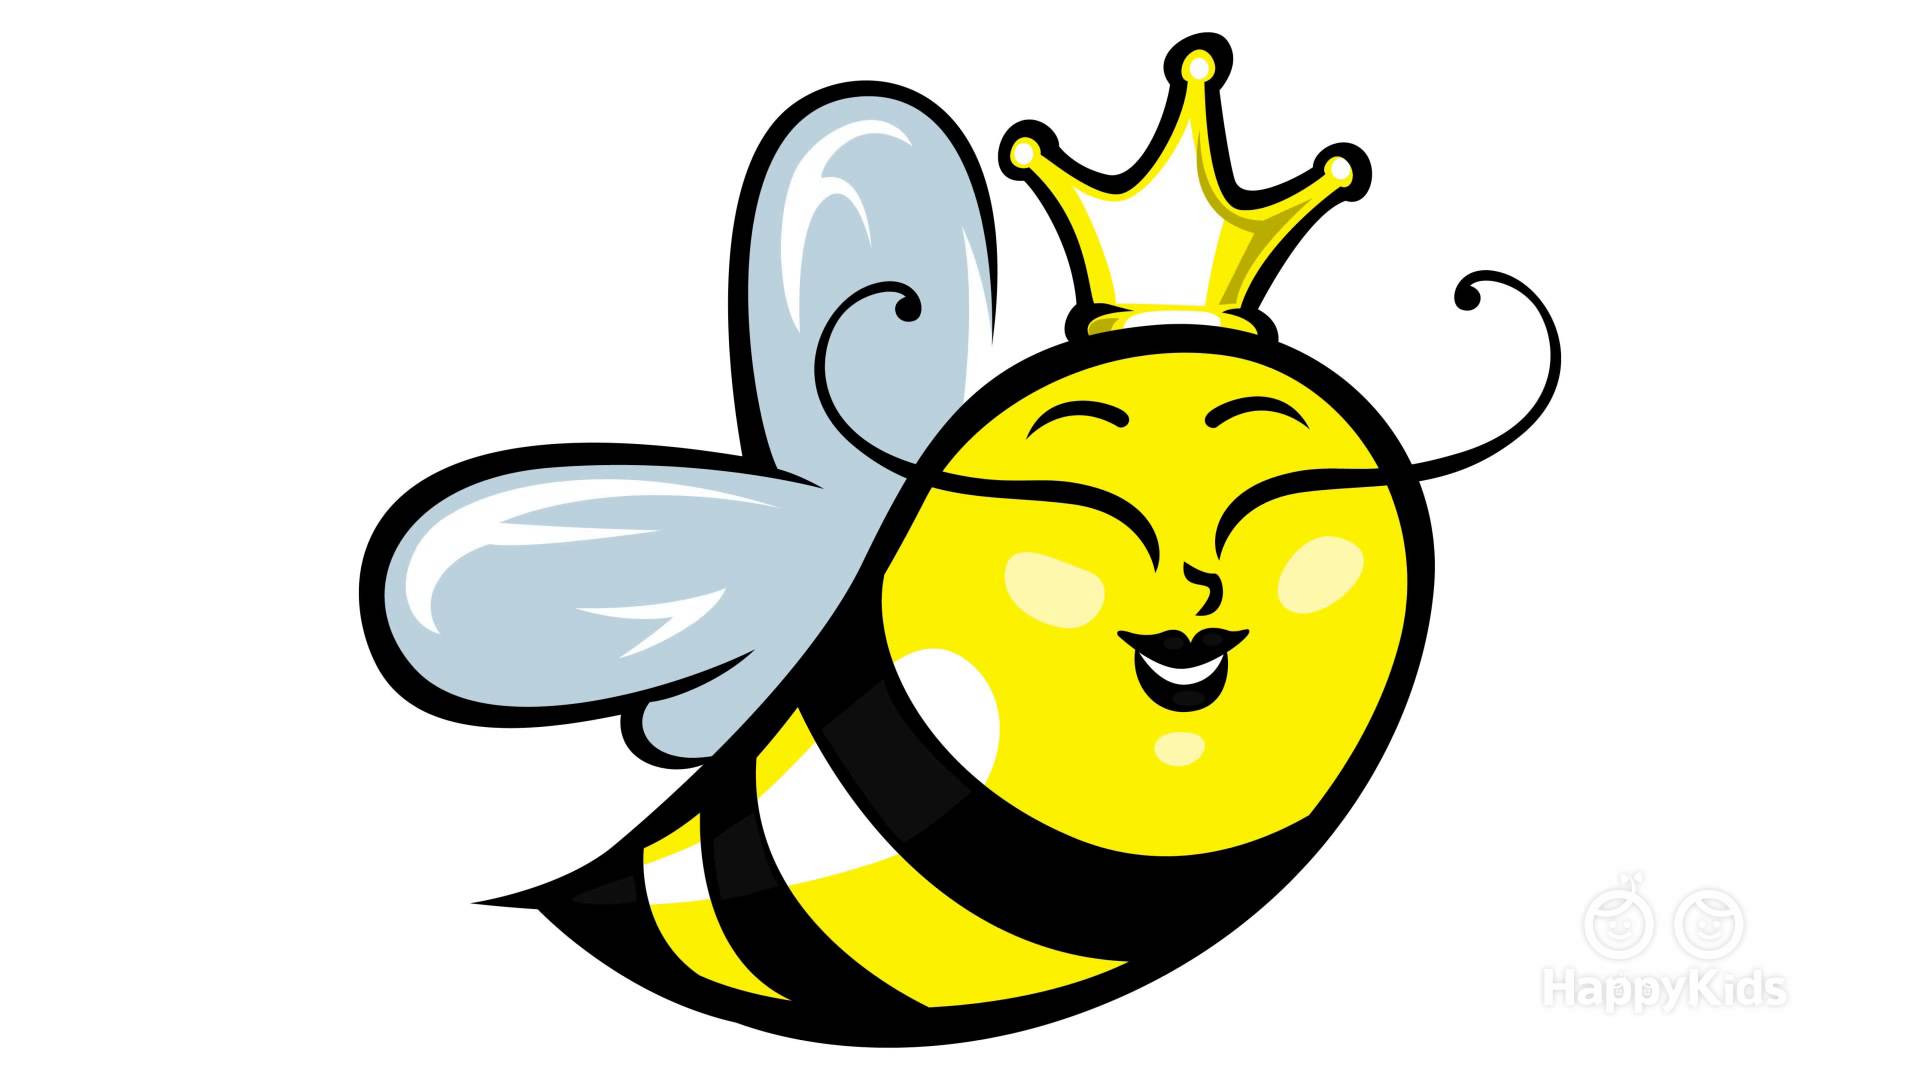 queen bee drawing at getdrawings com free for personal use queen rh getdrawings com